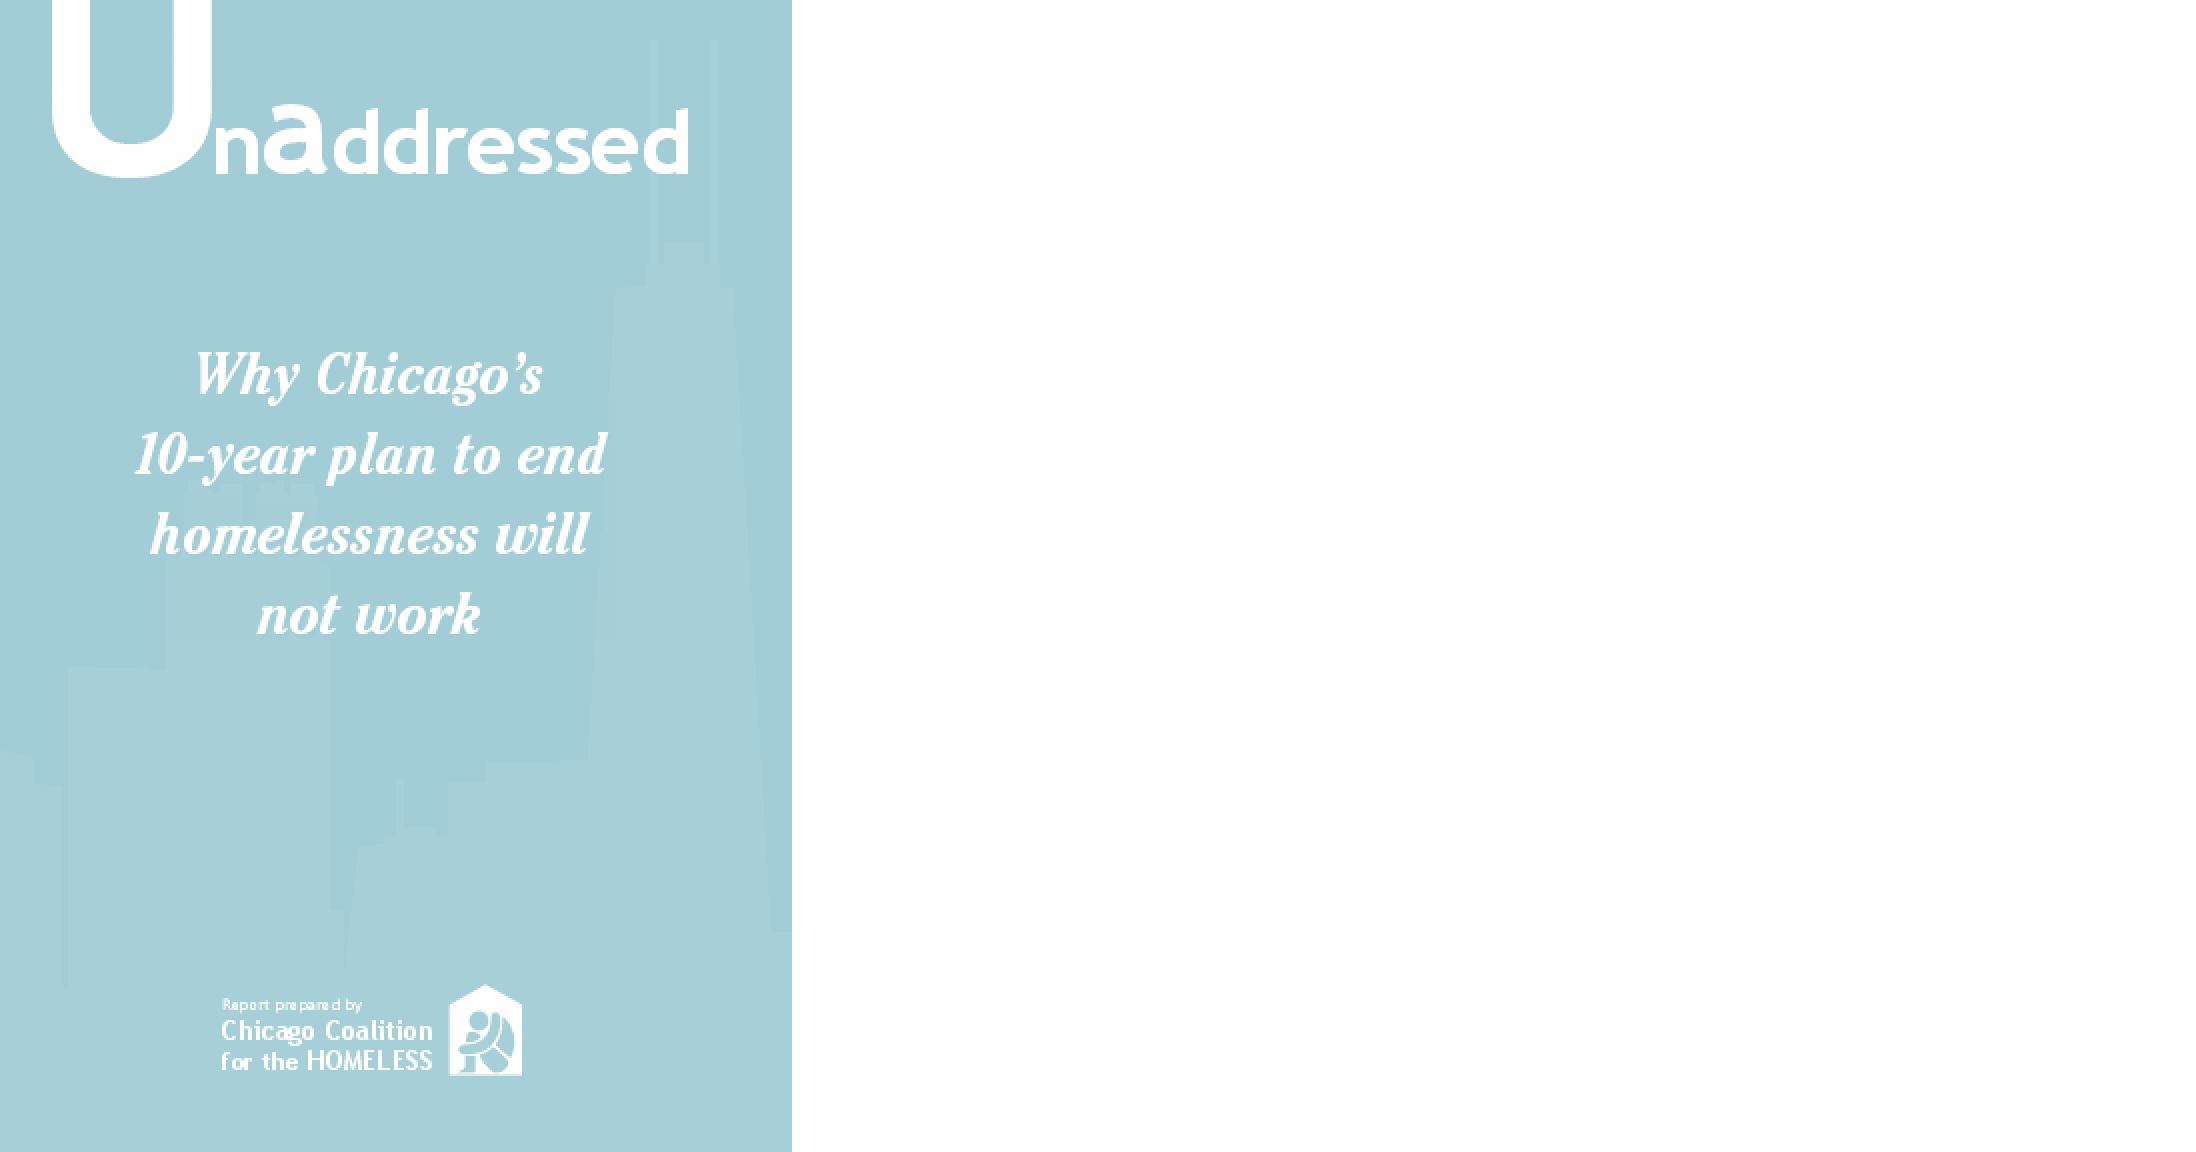 Unaddressed: Why Chicago's 10-year plan to end homelessness will not work